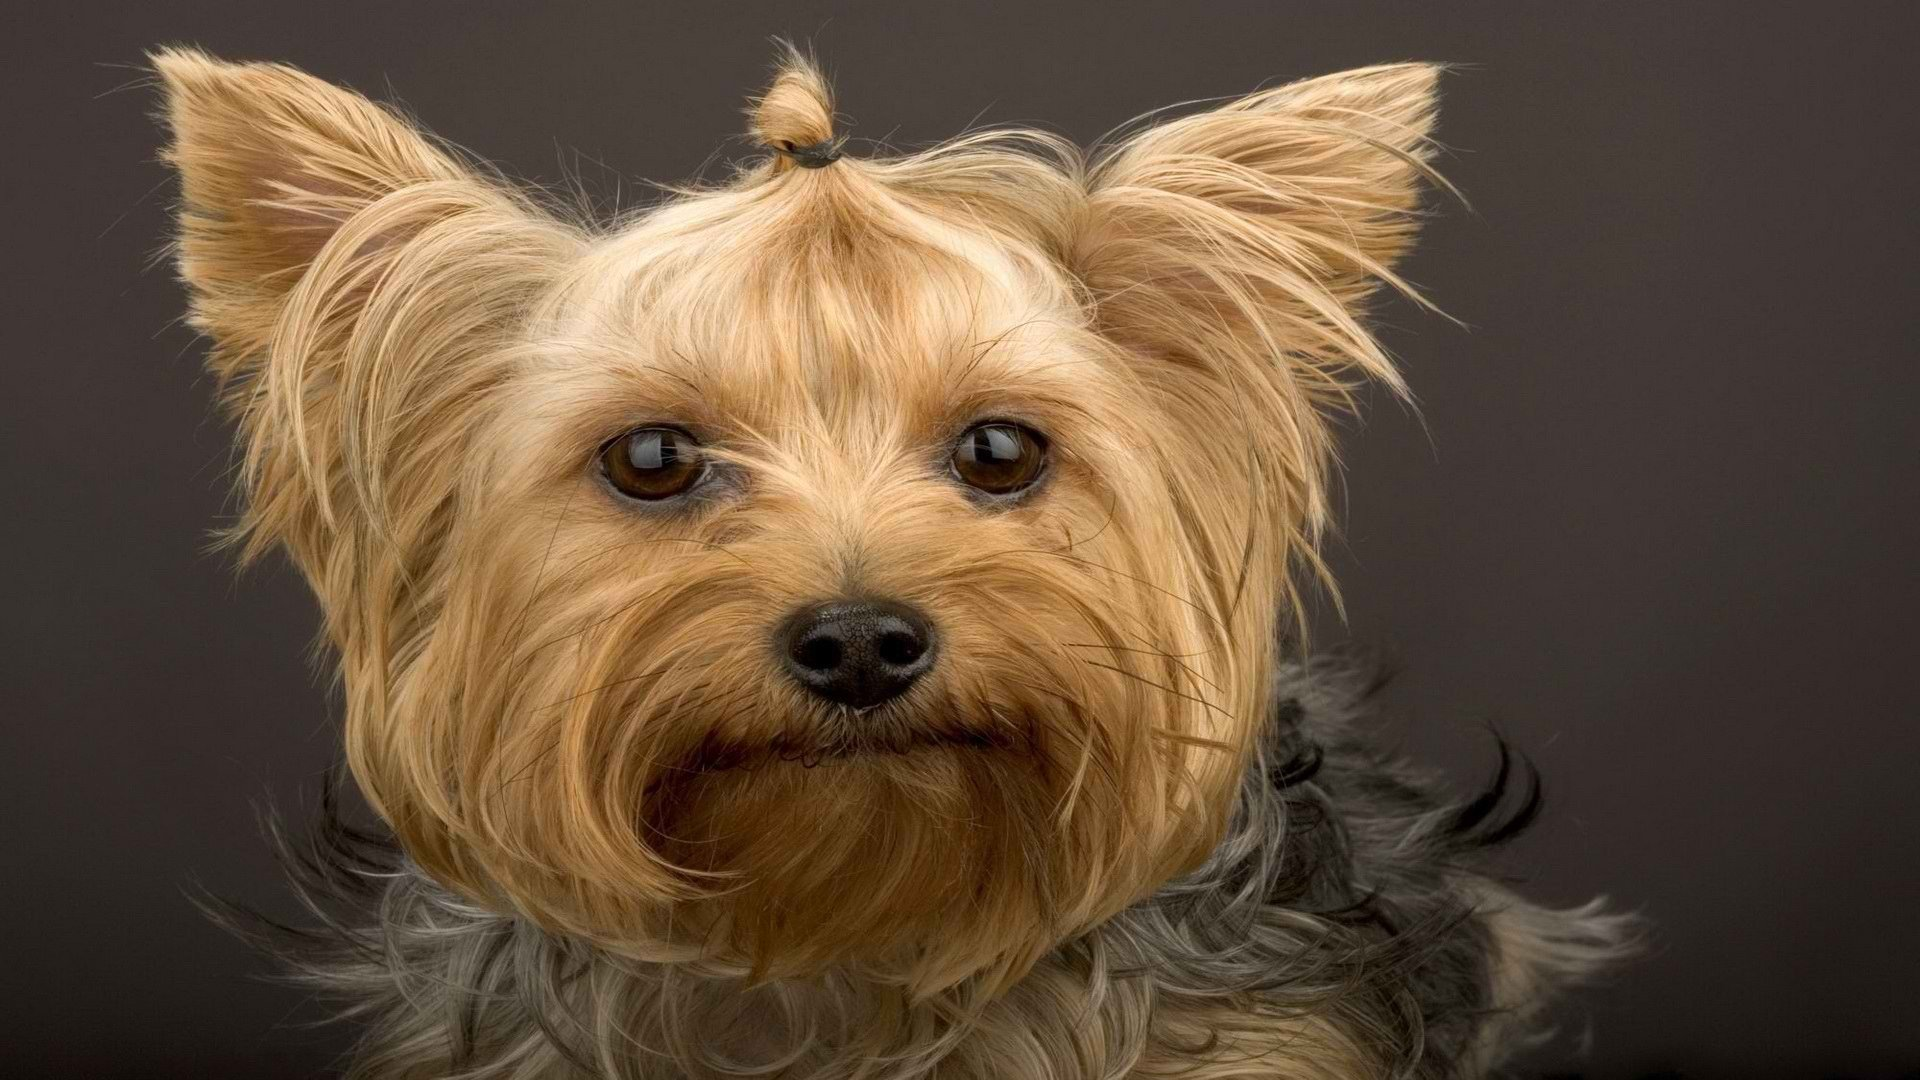 Used Corvettes near Greenville SC - R3 Motorcars Pictures of yorkie terrier mix